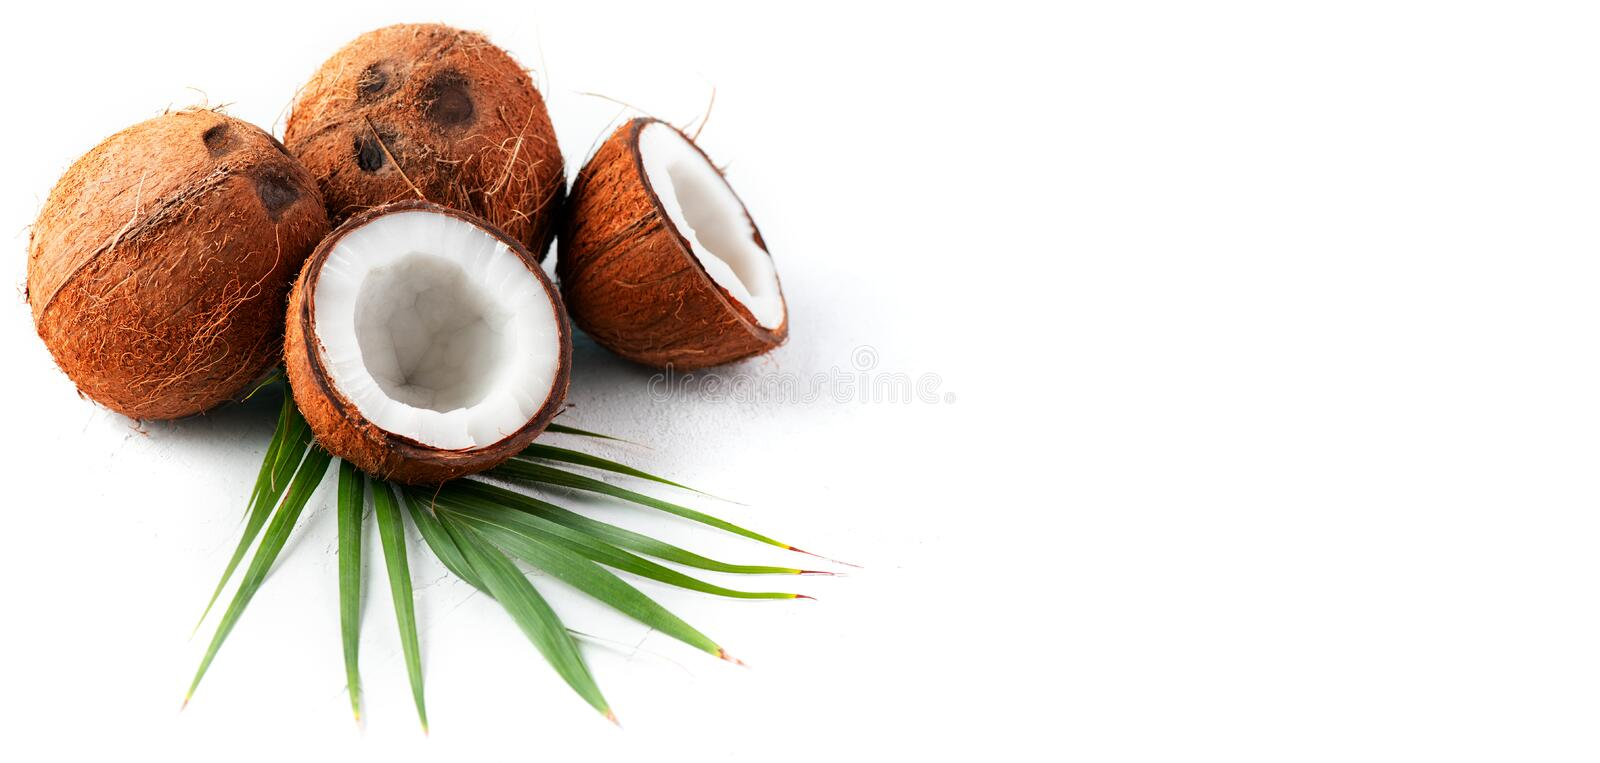 Coconut with coconuts palm tree leaf isolated on a white background. Fresh coco nut. Healthy food, skin care concept. Vegan food royalty free stock photo